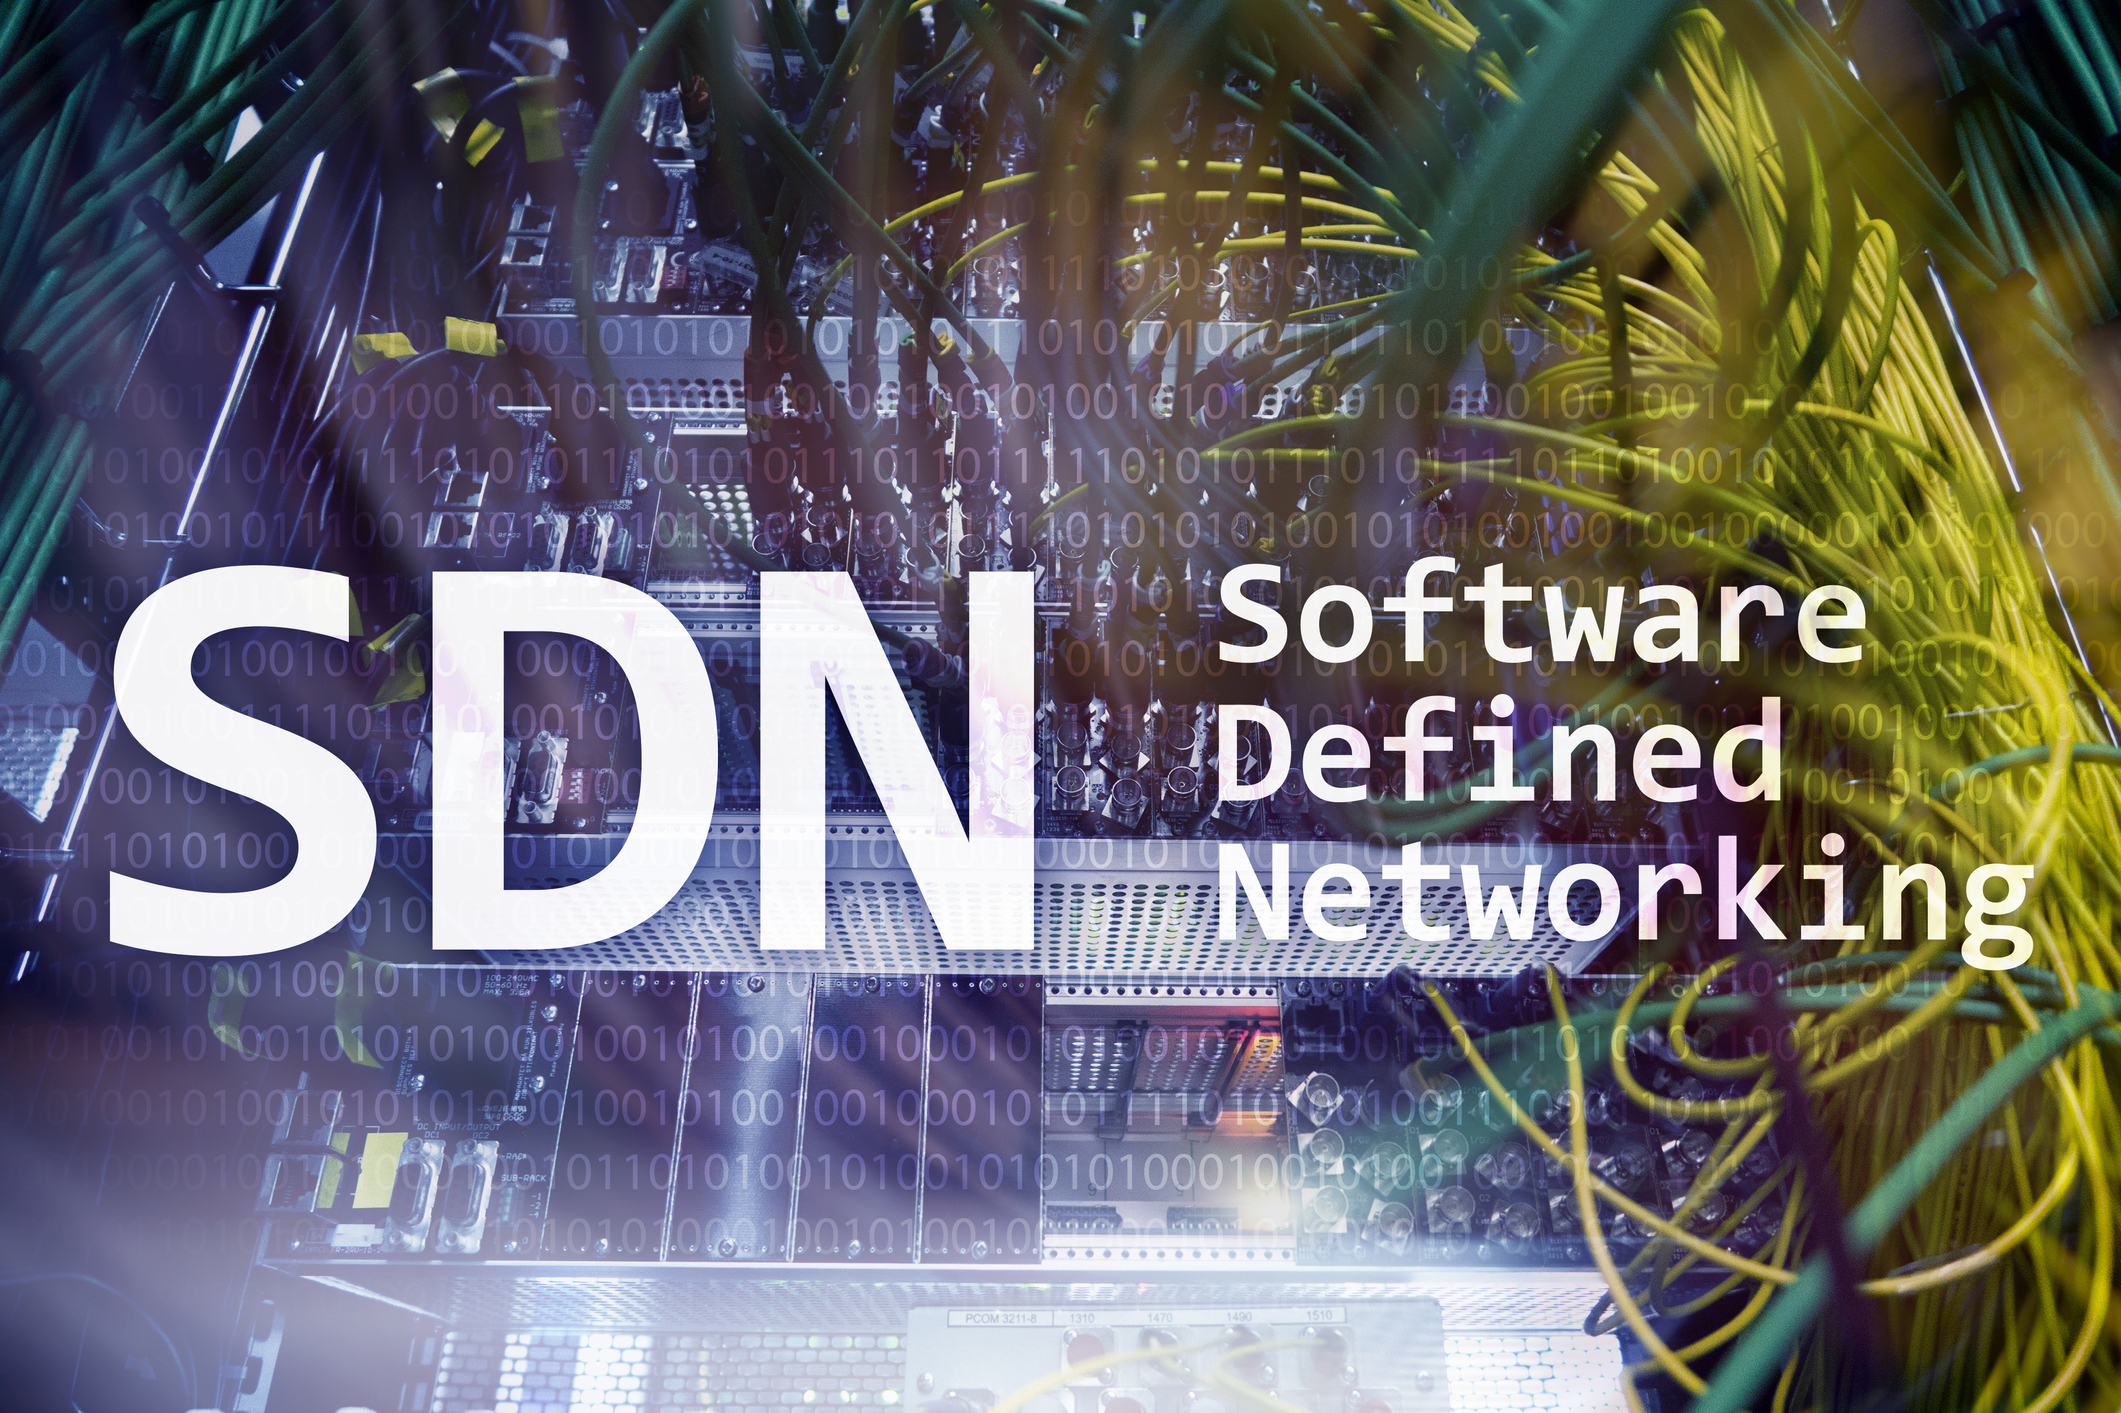 Software Defined Networking Narrow